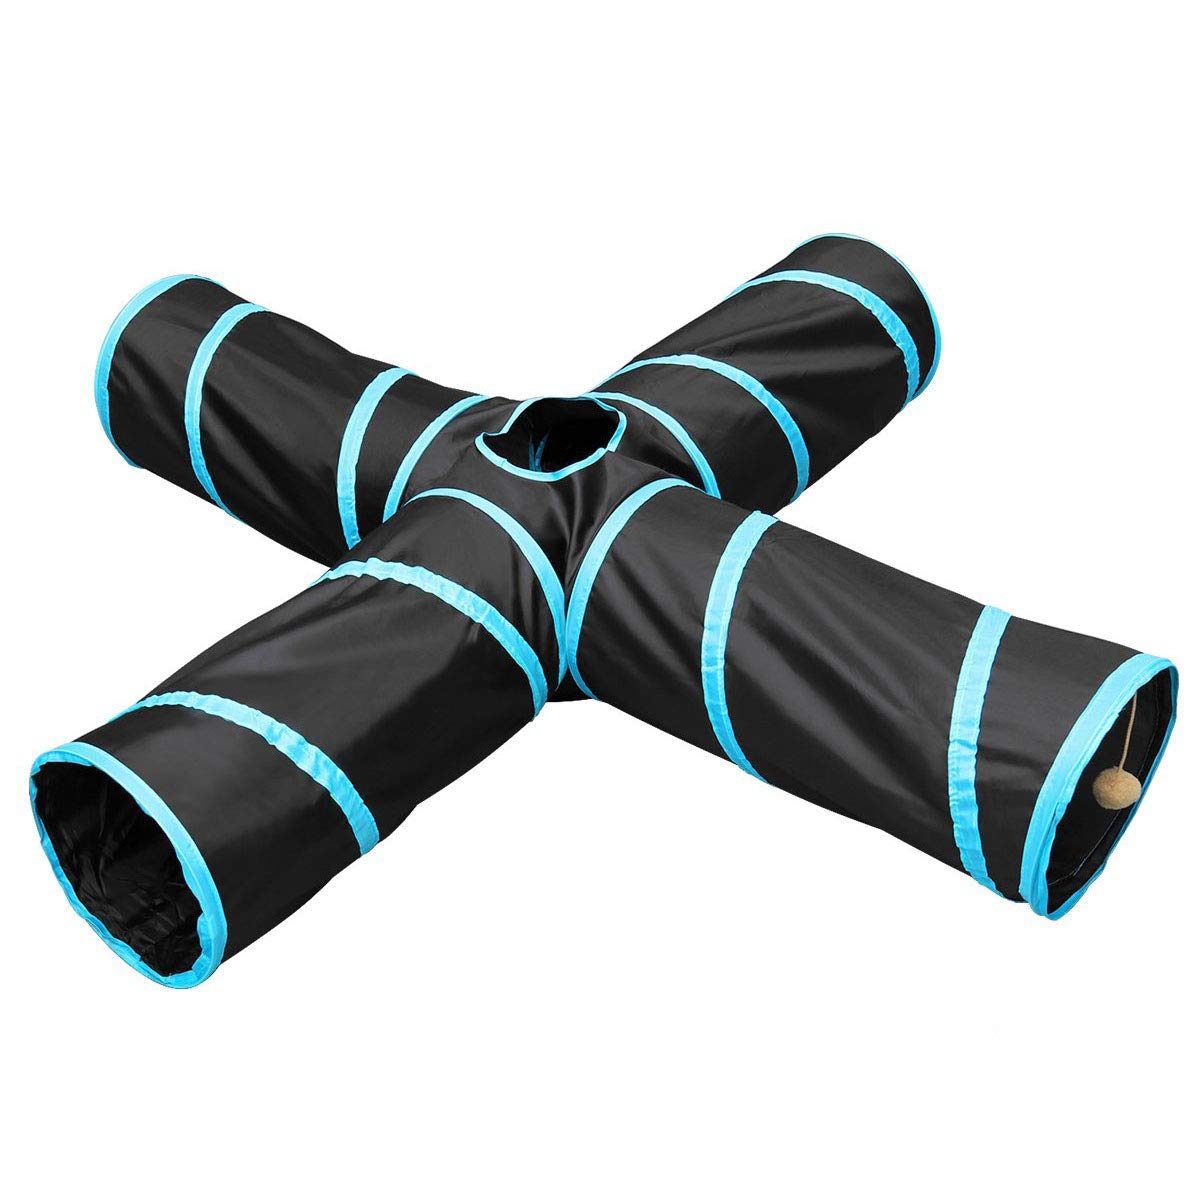 Li-HIM Pet Tunnel, 4 Way Collapsible Cat Tunnel Tube Pet Toys with Peek Hole Hang Ball Waterproof for Puppy Kitten Rabbit by Li-HIM